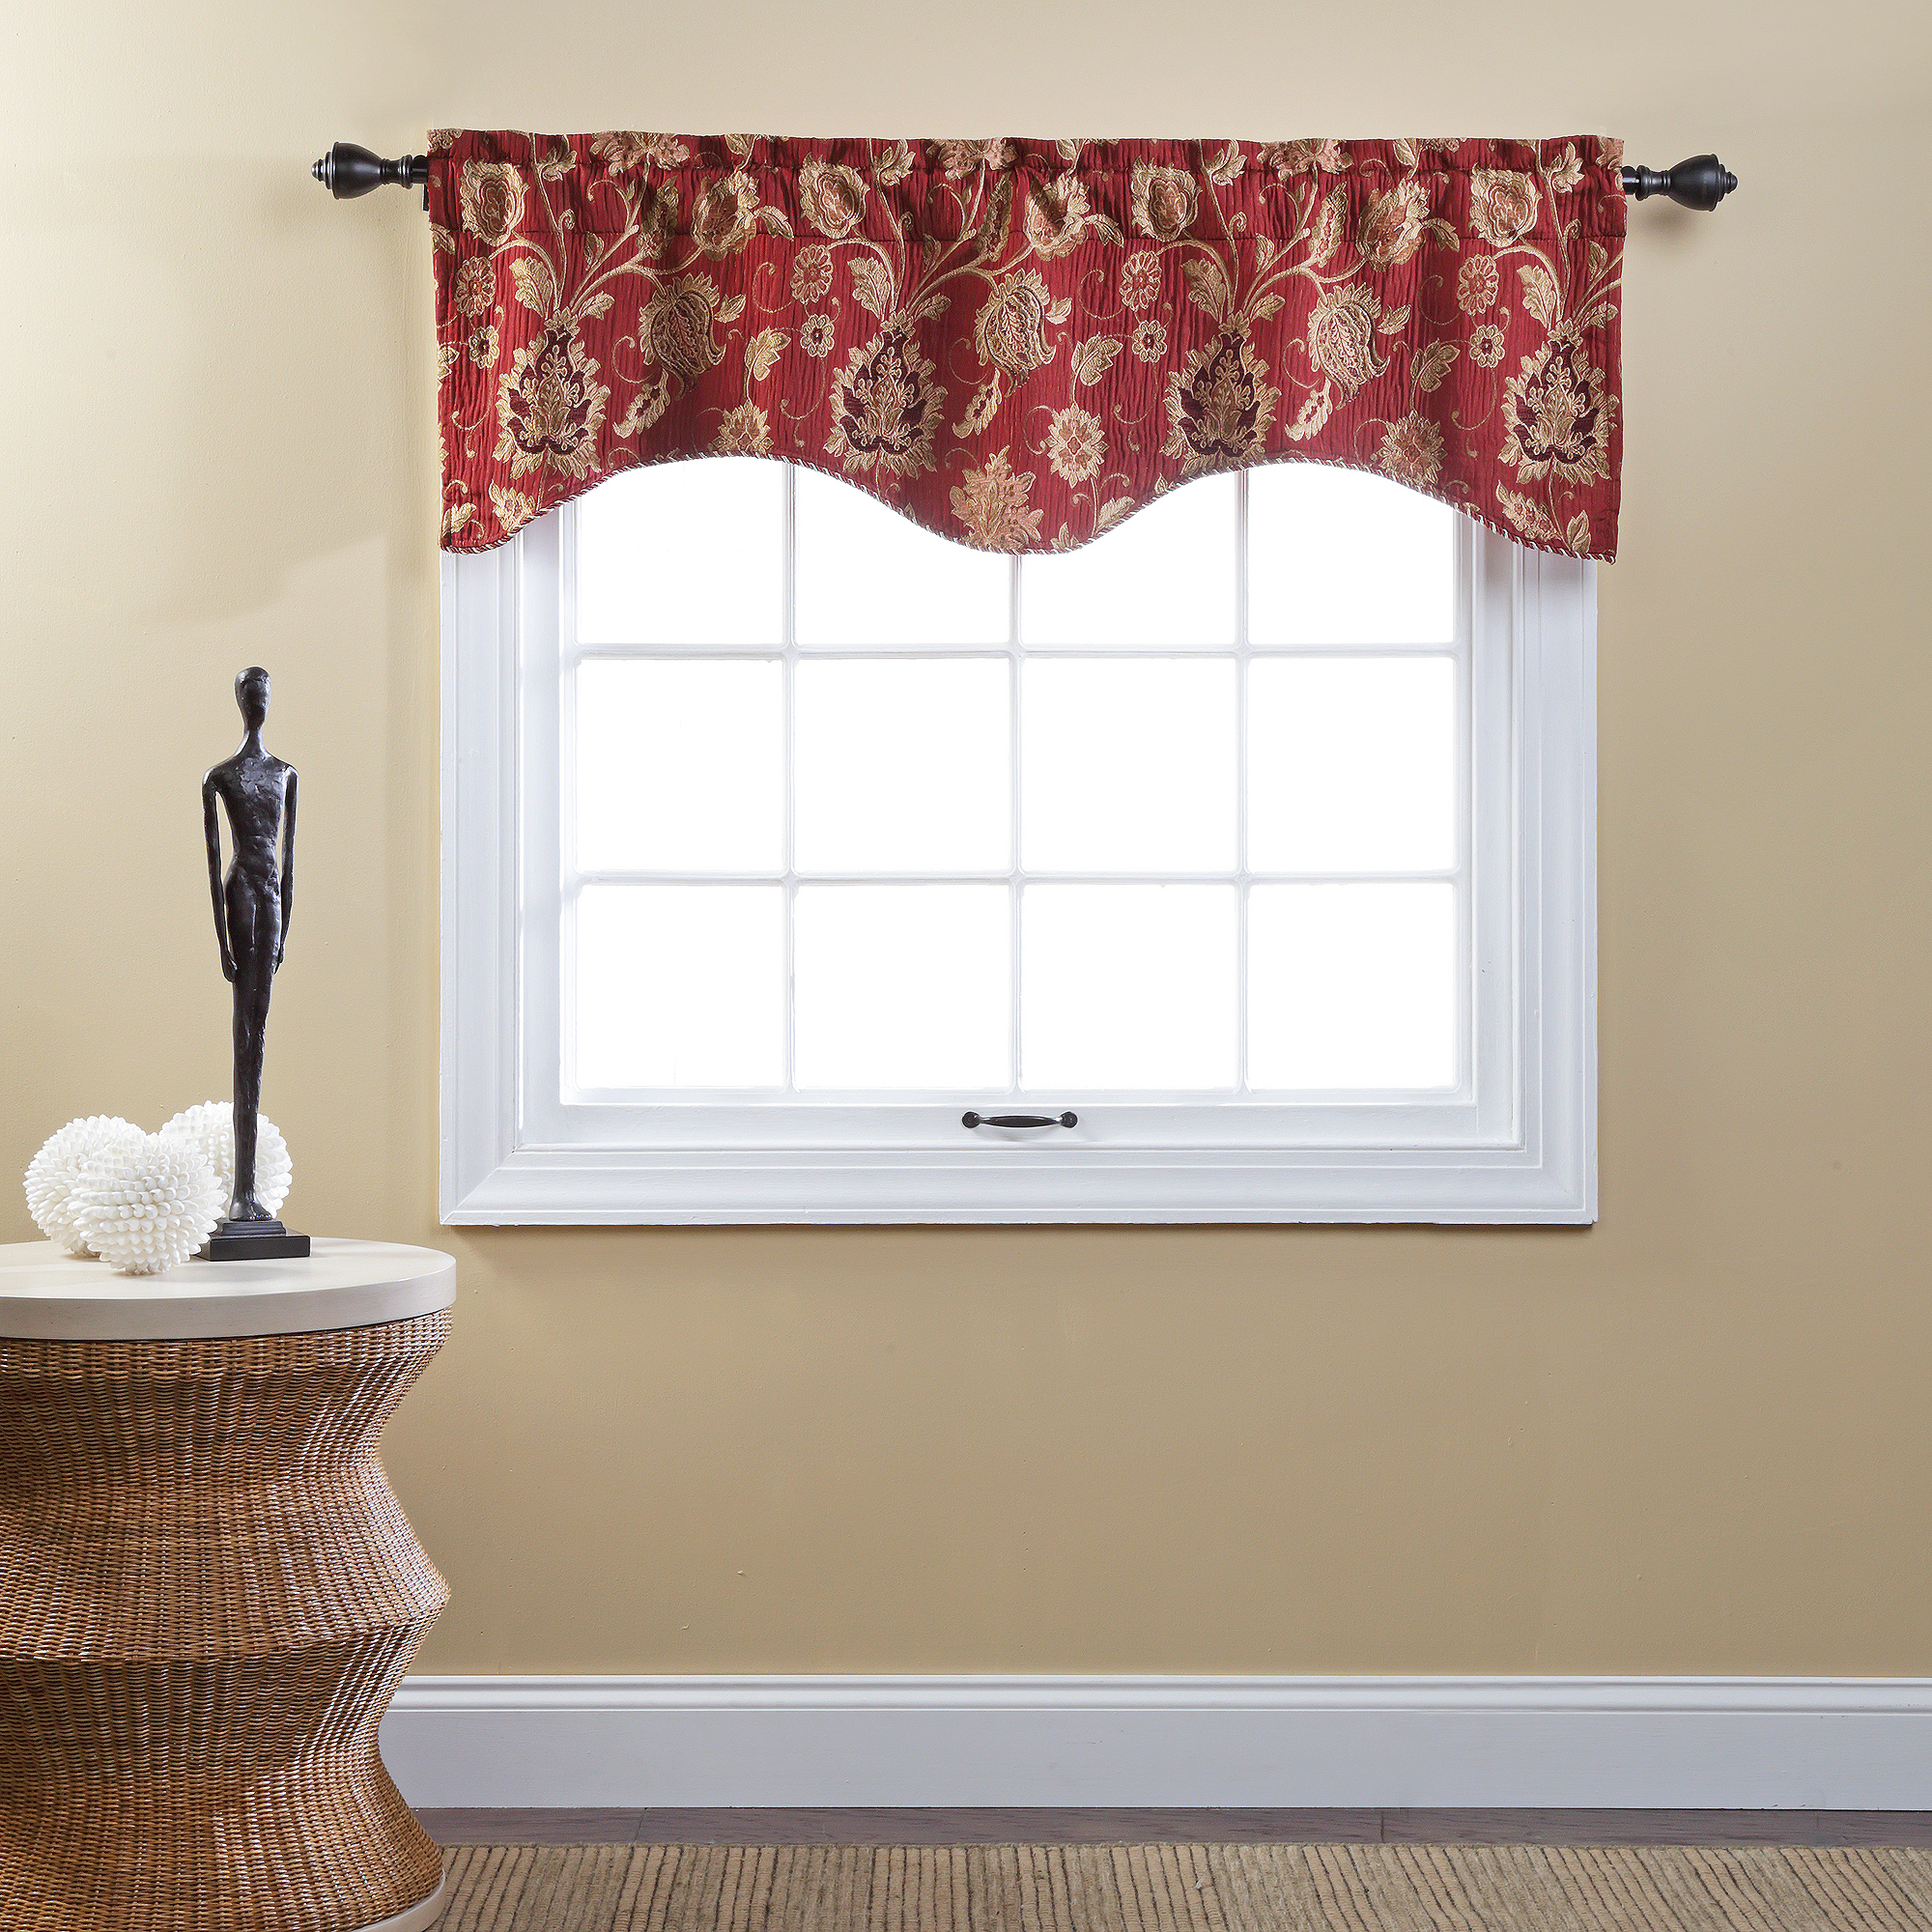 Melbourne Chenille Scalloped Valance with Cording